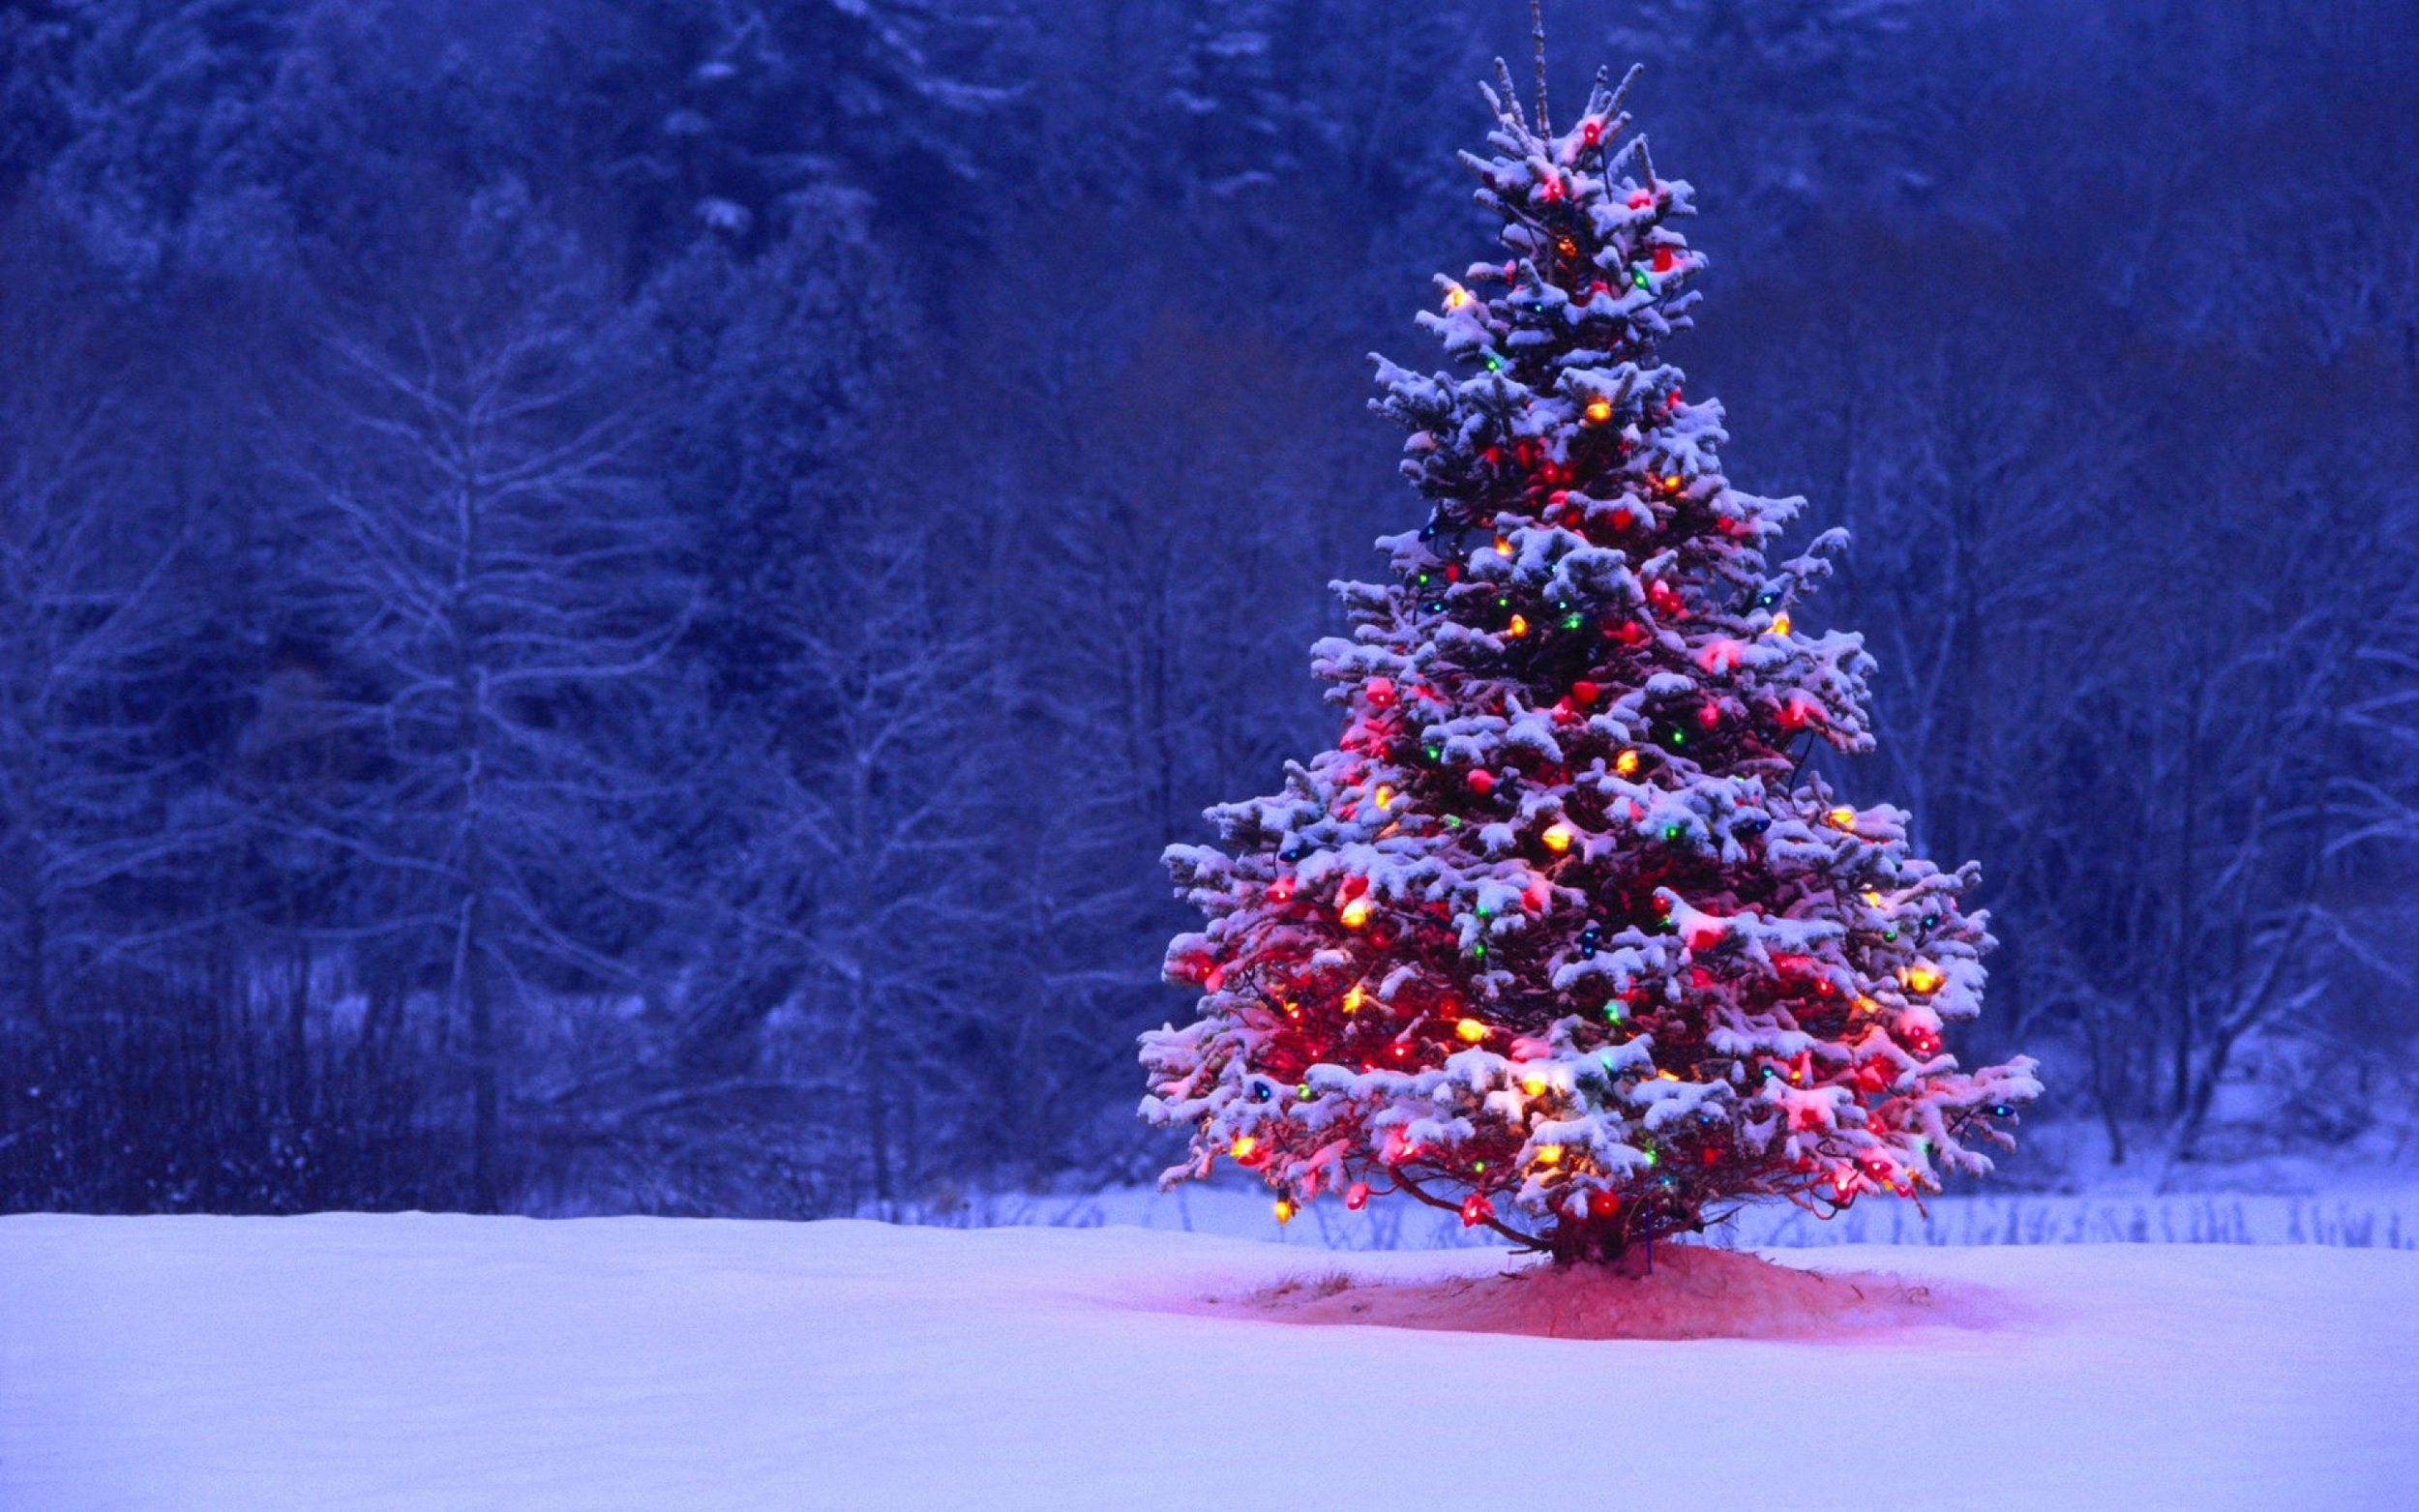 Christmas-Tree-Snow-Forest.jpg